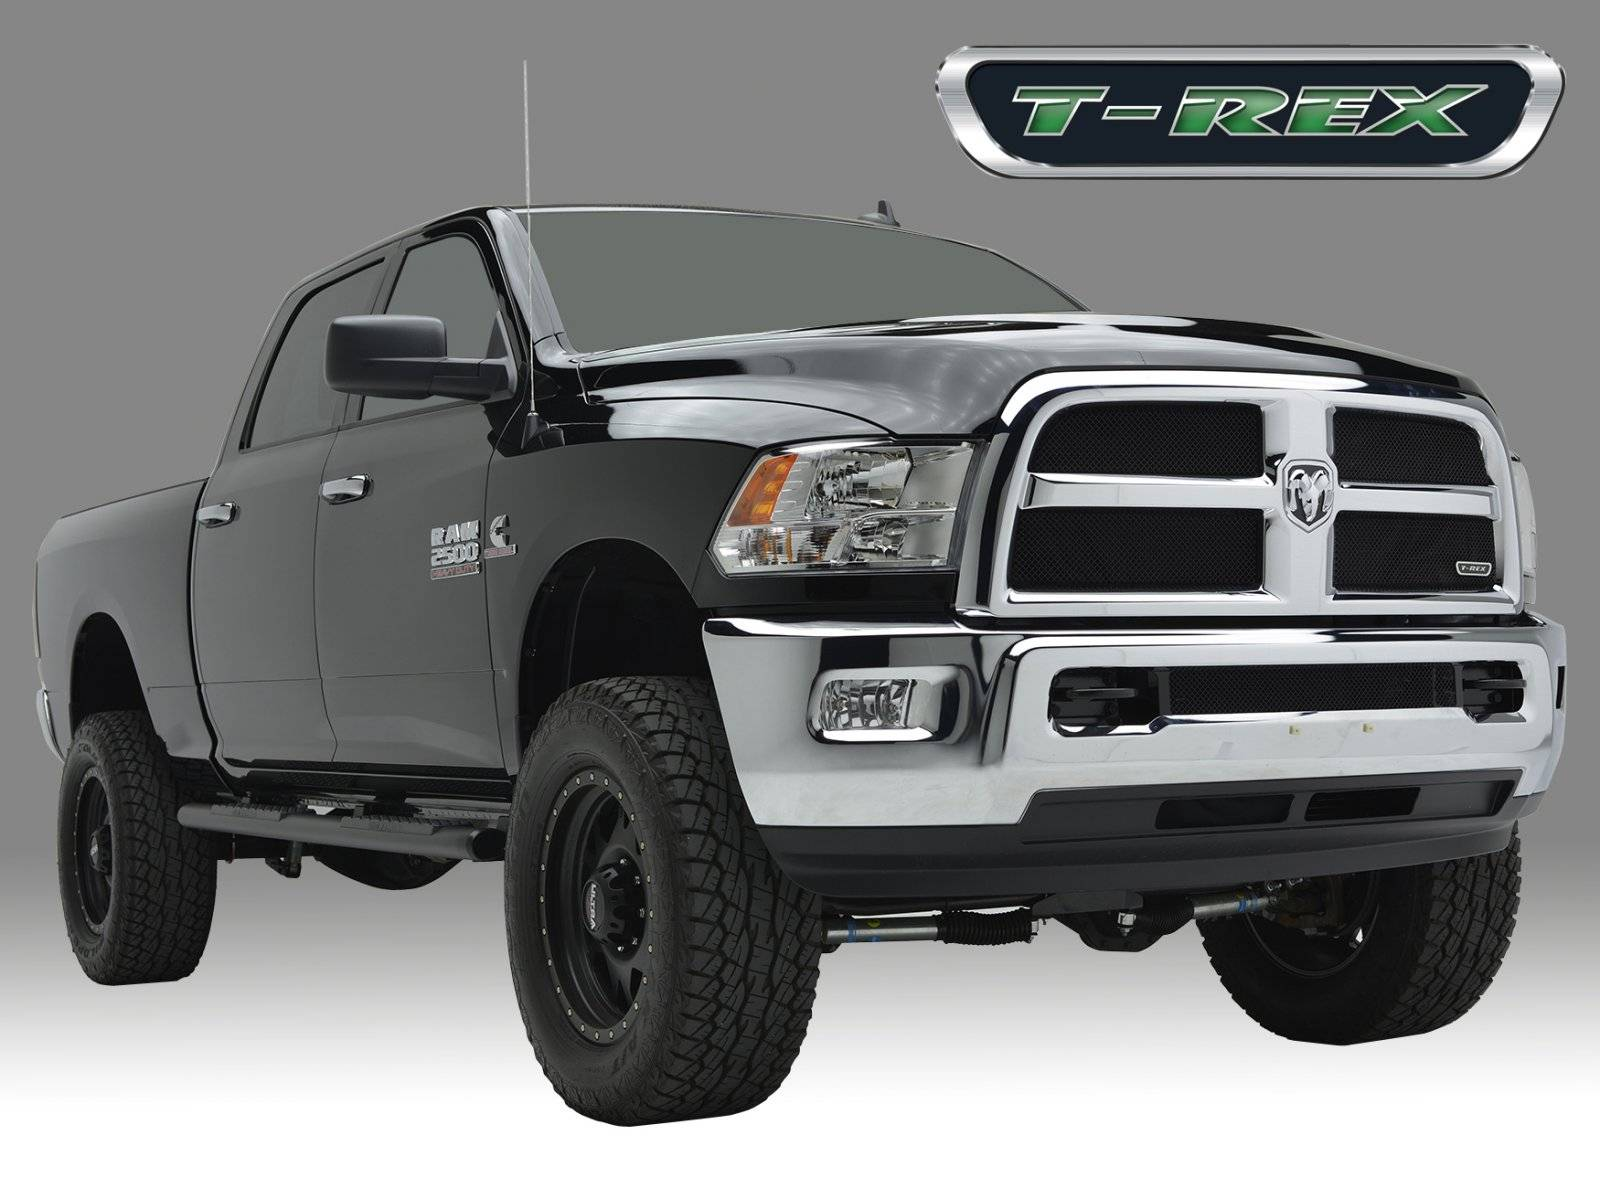 T-REX Grilles - Dodge Ram PU 2500 / 3500 Sport Series, Formed Mesh Grille, Main, Replacement, 2 Pc's 4 Pc's look, Black Powdercoated Mild Steel - Pt # 46452